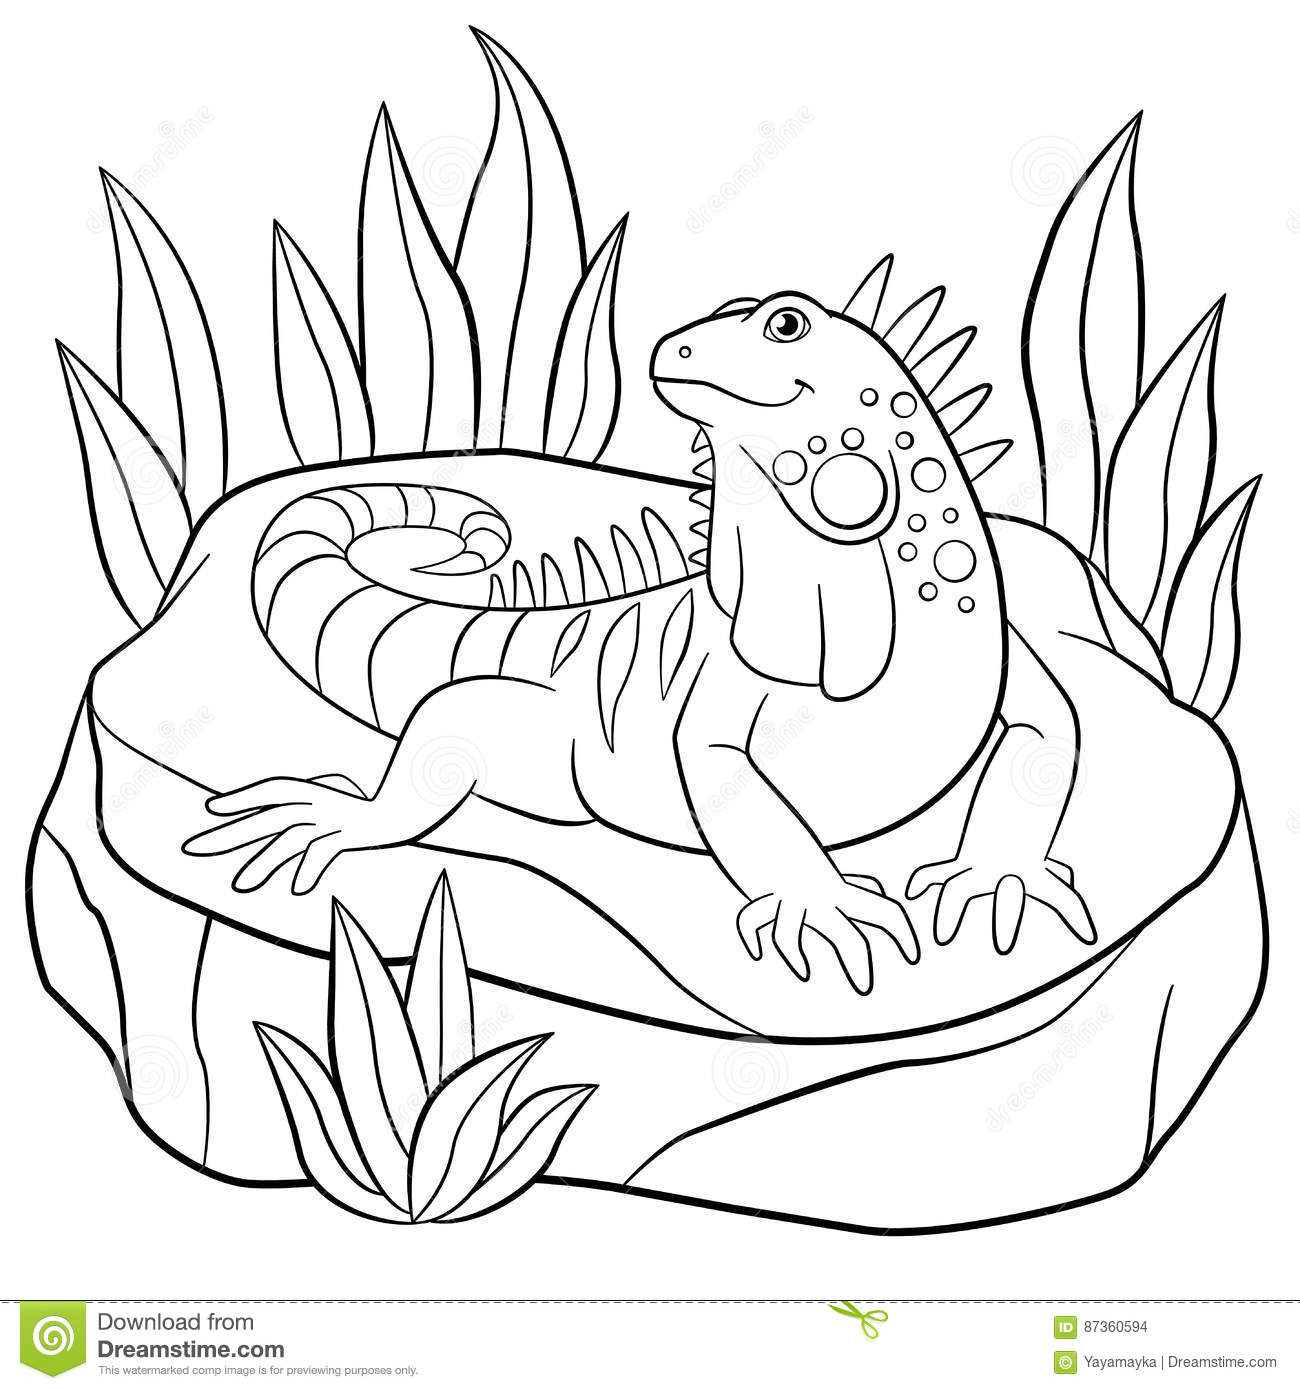 Coloring Pages. Cute Iguana Sits On The Rock. Stock Vector